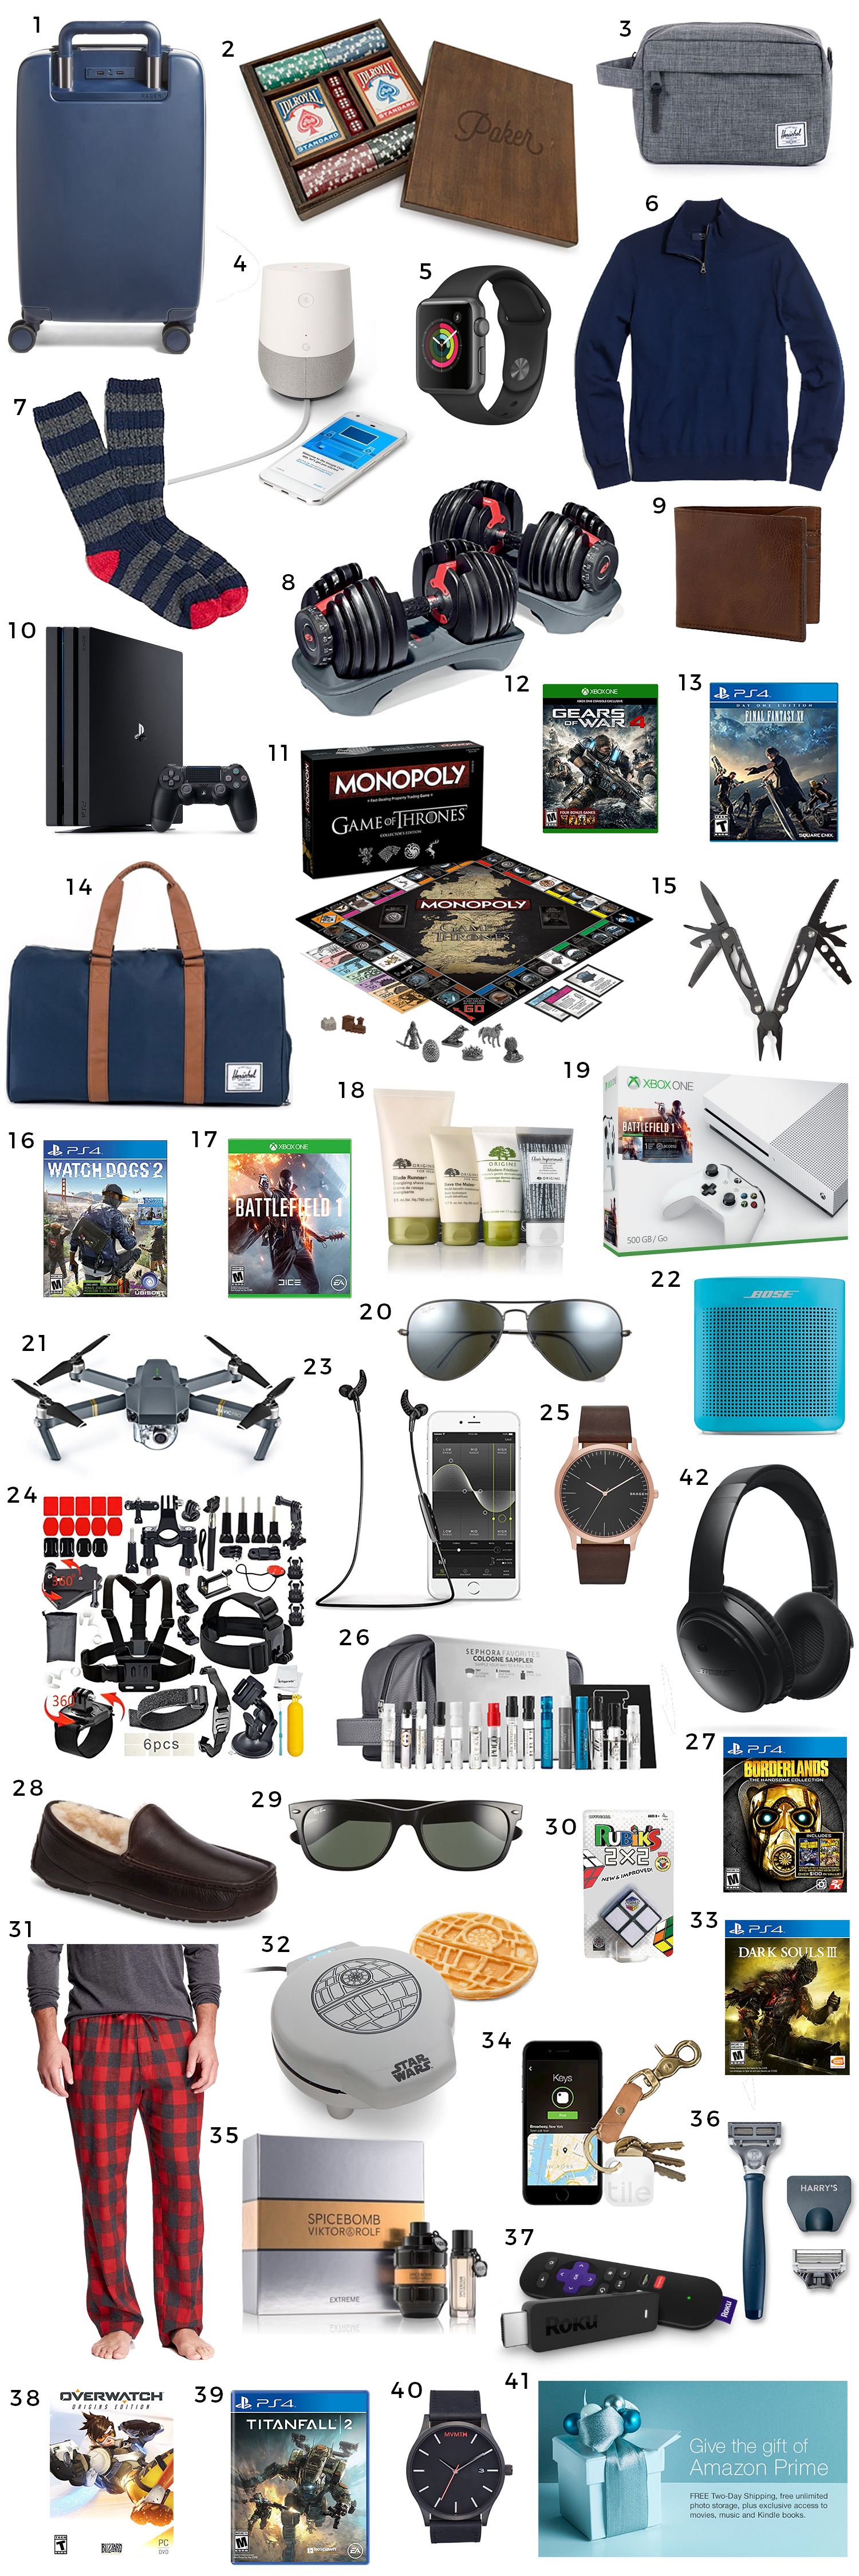 38f1584d40fa The Best Christmas Gift Ideas for Men